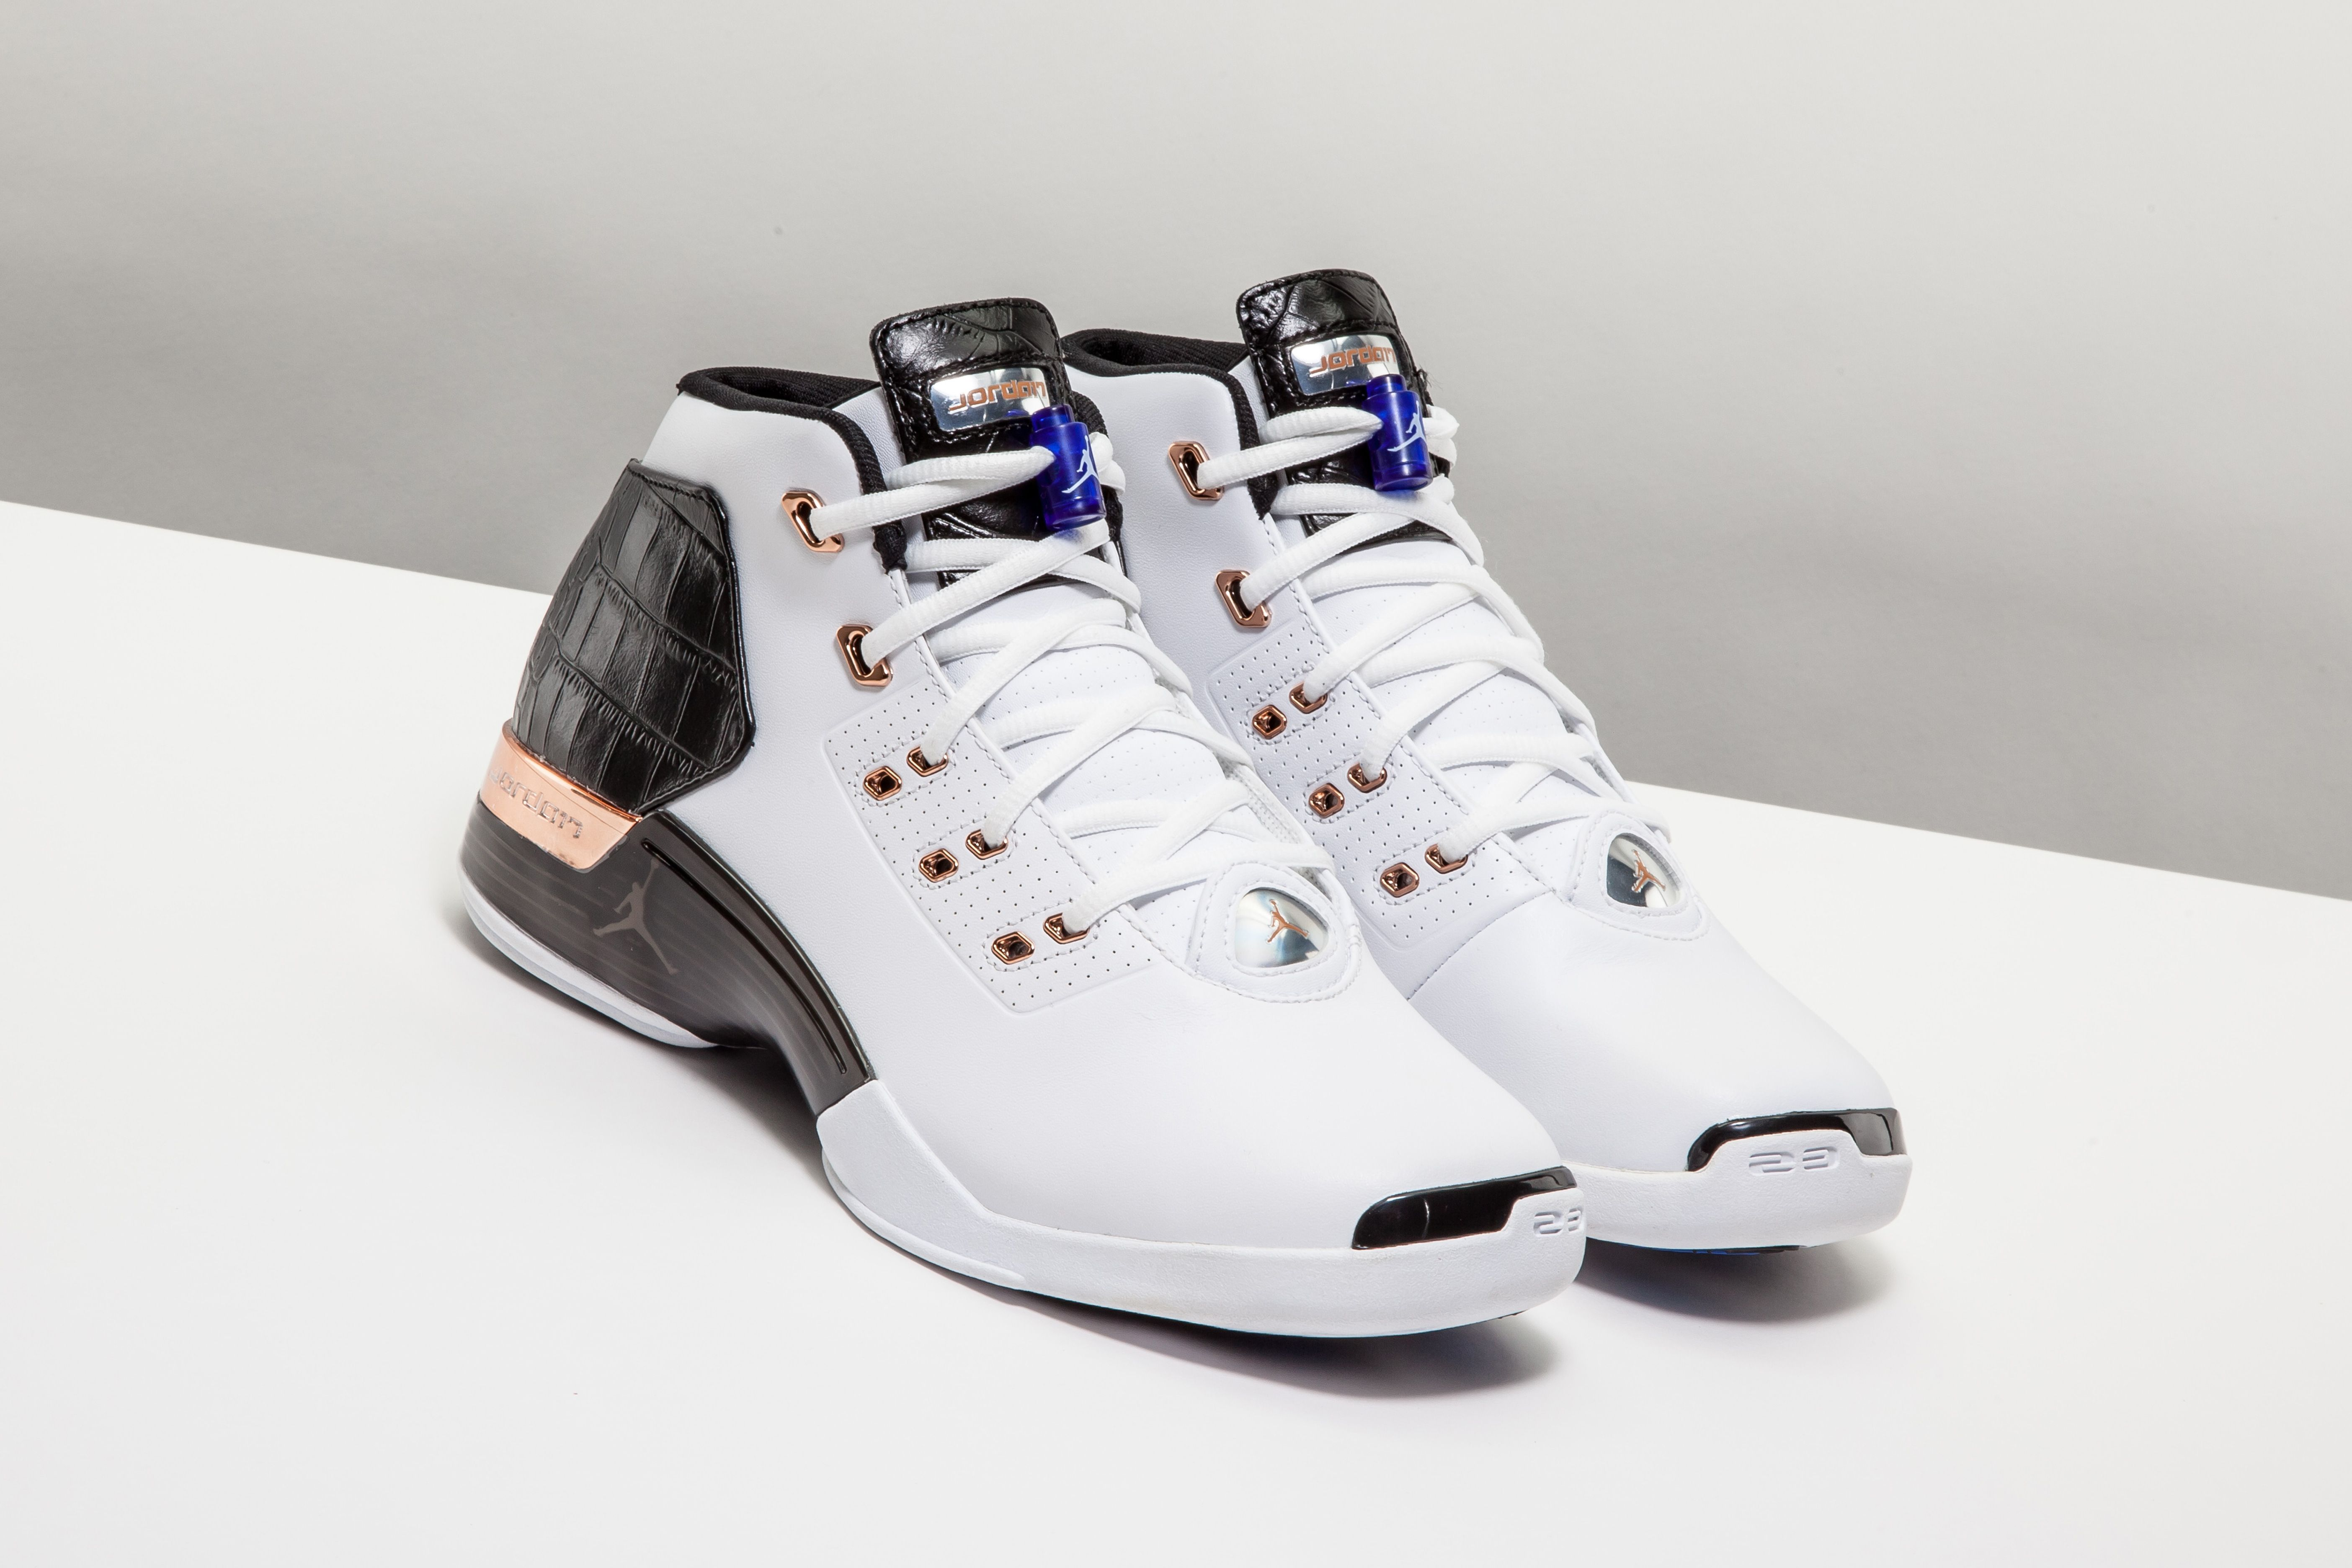 low priced 39658 89e31 The faux croc embossed Air Jordan 17 + Retro brings a luxe look to an unsung